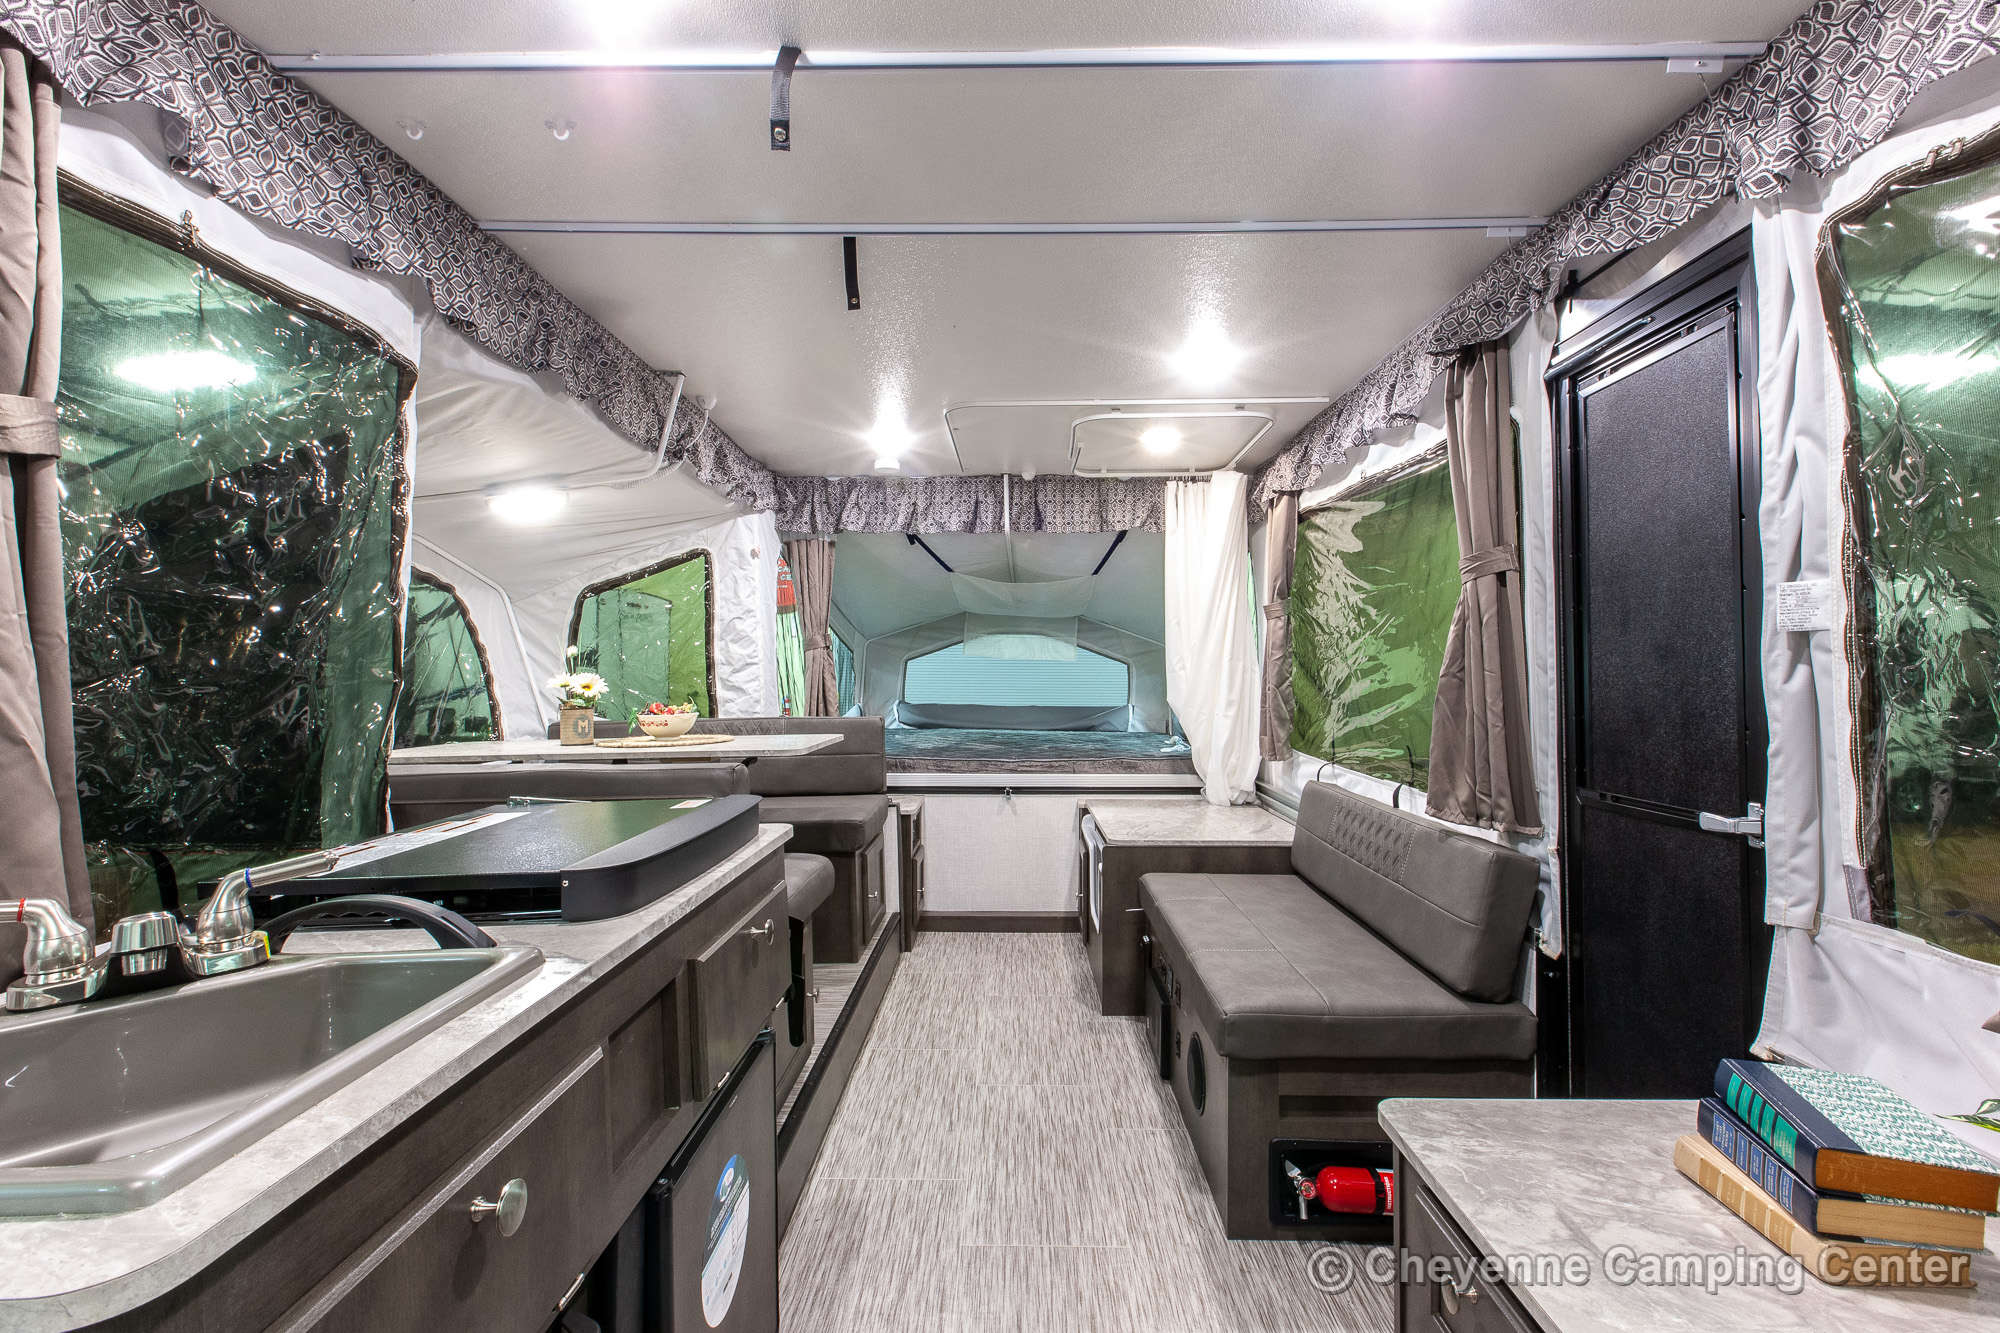 2021 Forest River Flagstaff Sports Enthusiast 28TSCSE Toy Hauler Folding Camper Interior Image